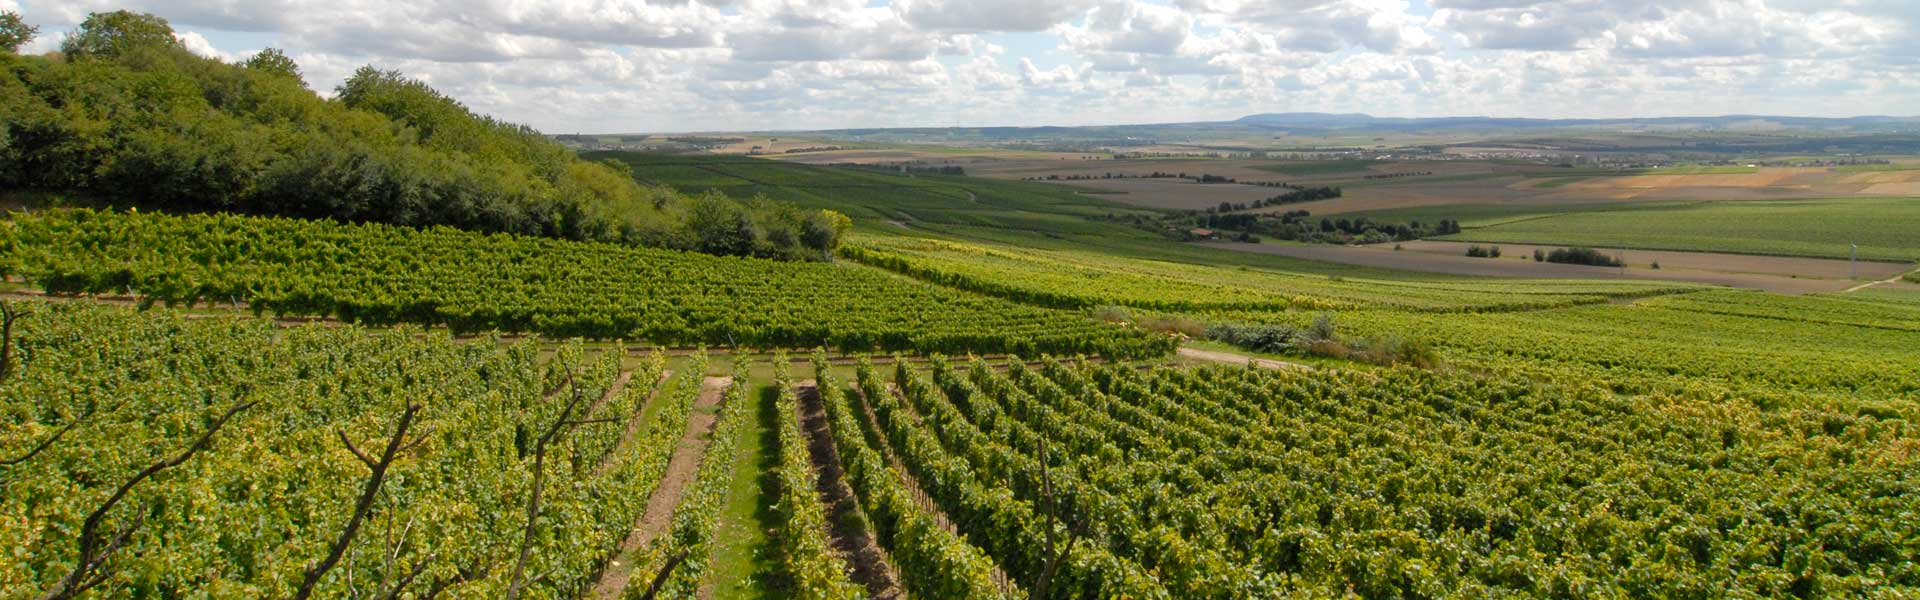 Germany's largest wine-growing region